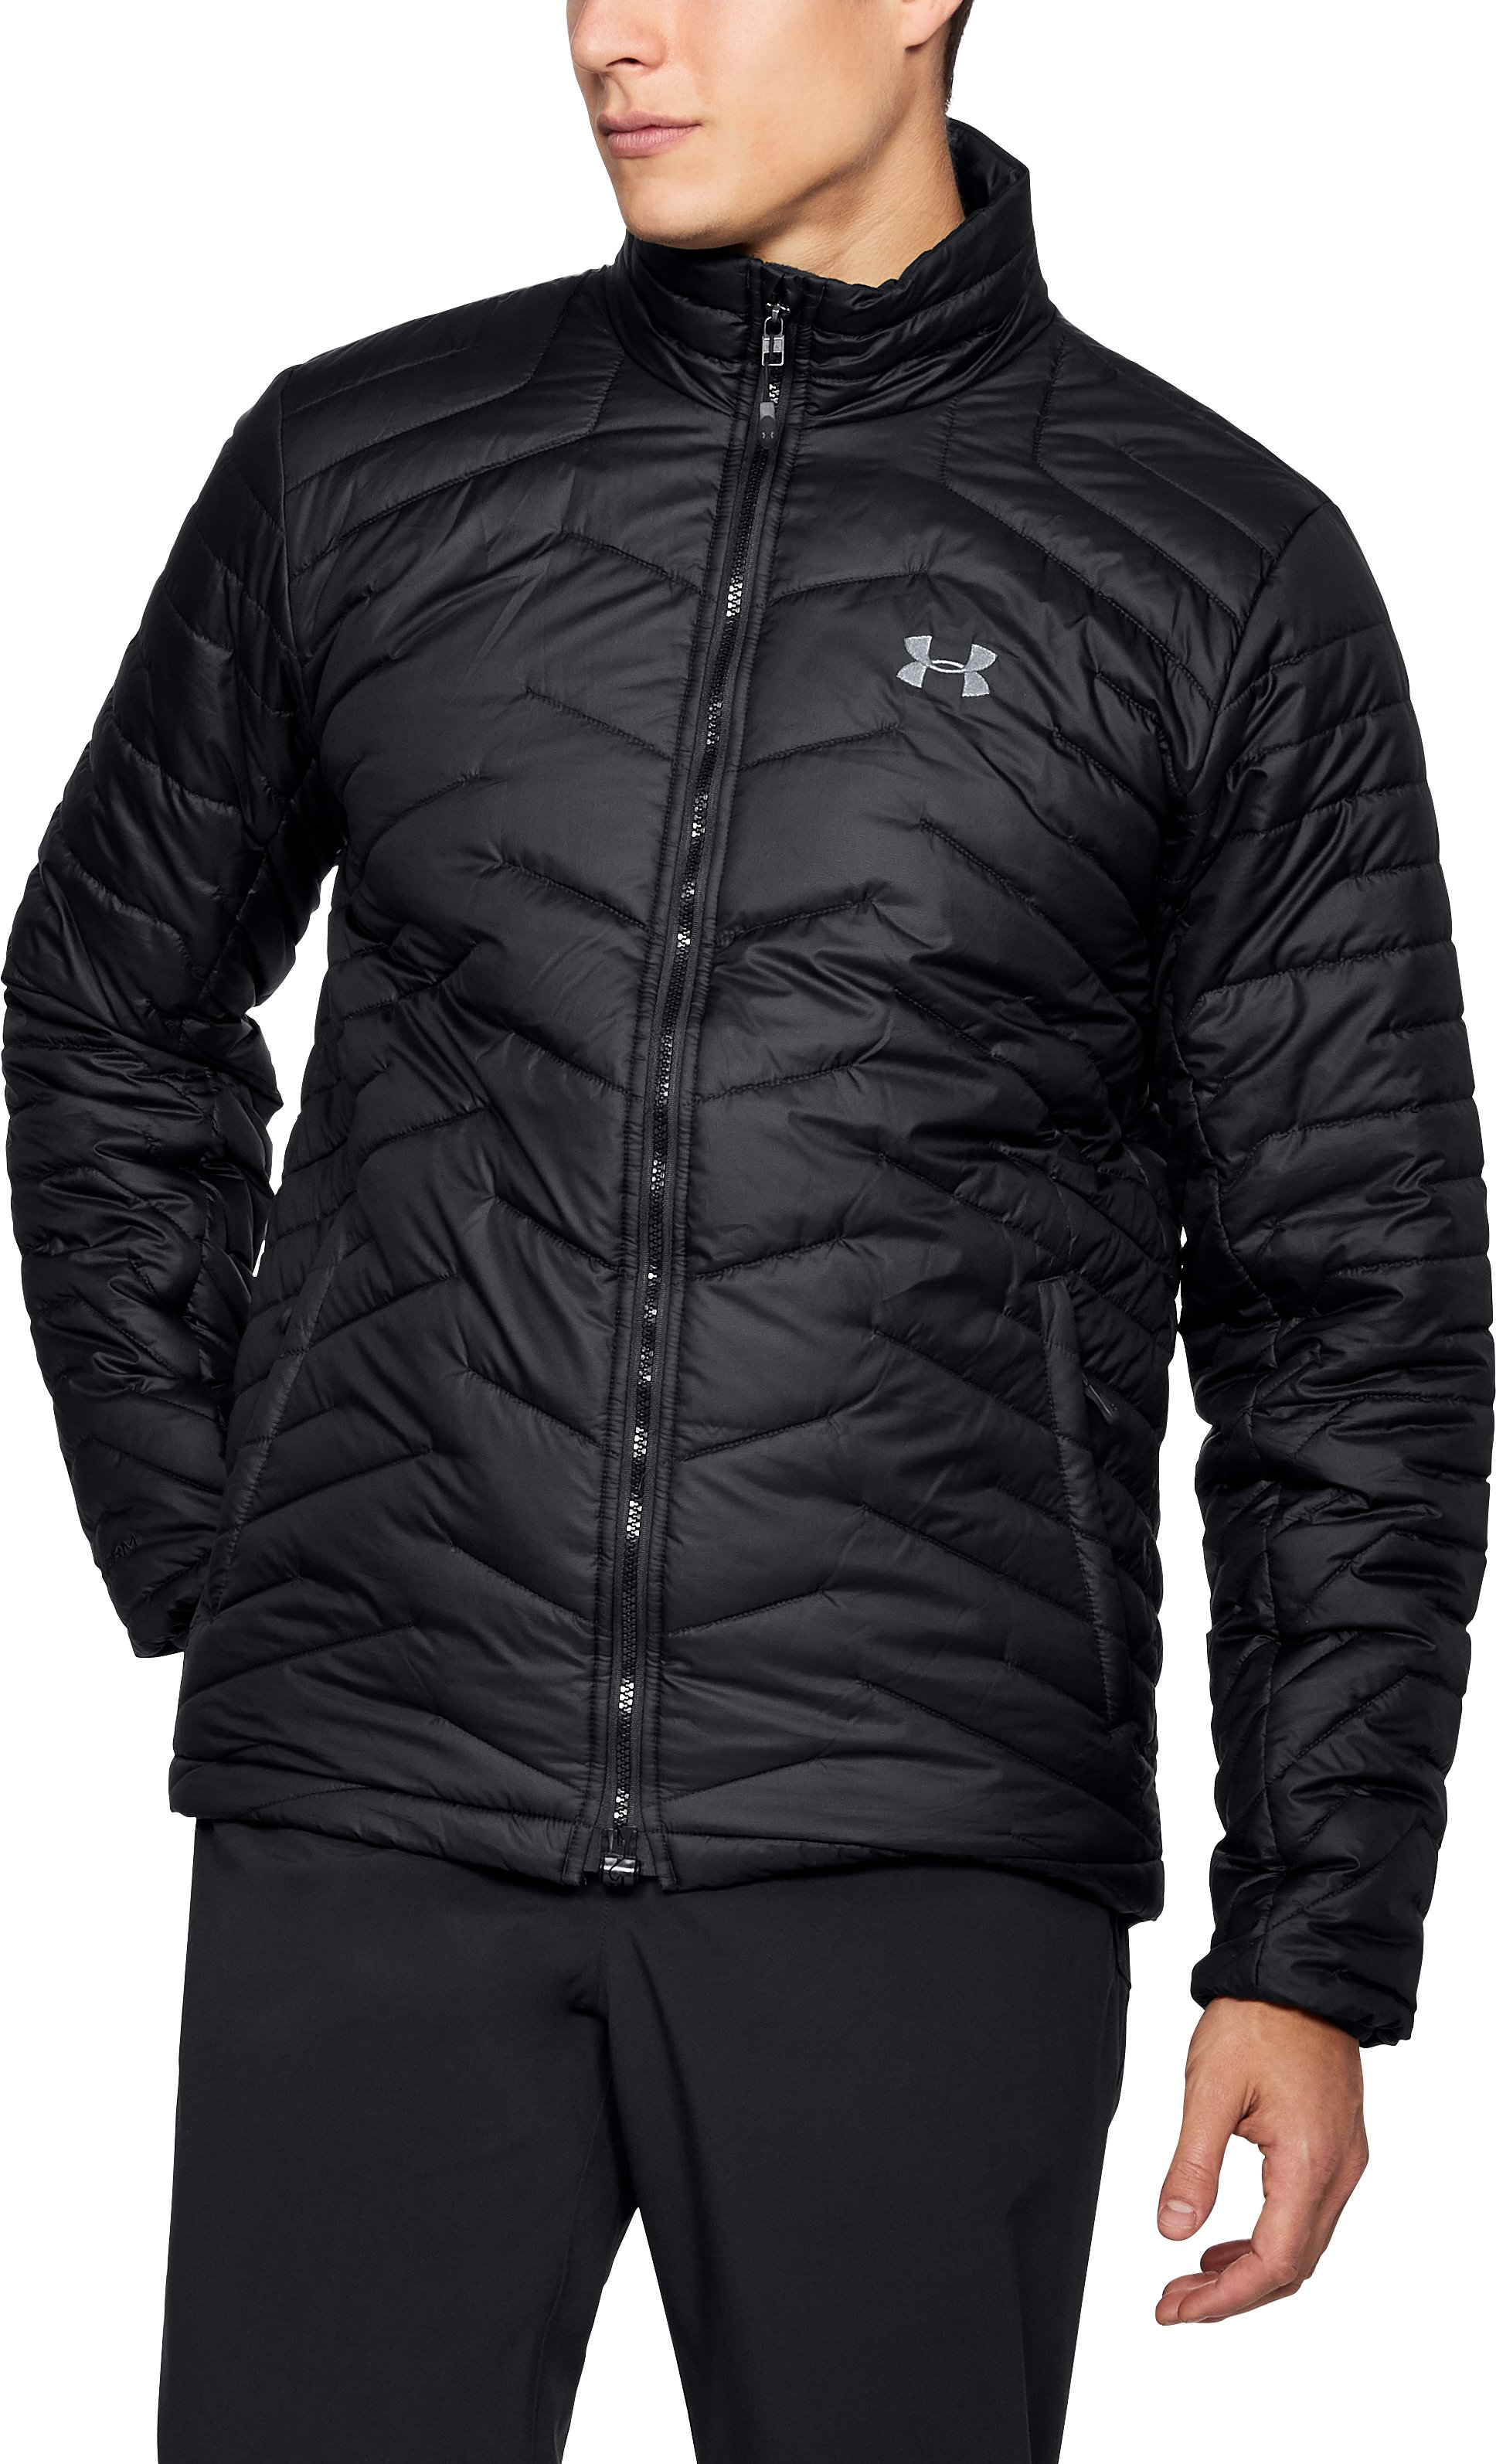 Men's ColdGear® Reactor Jacket 8 Colors $119.99